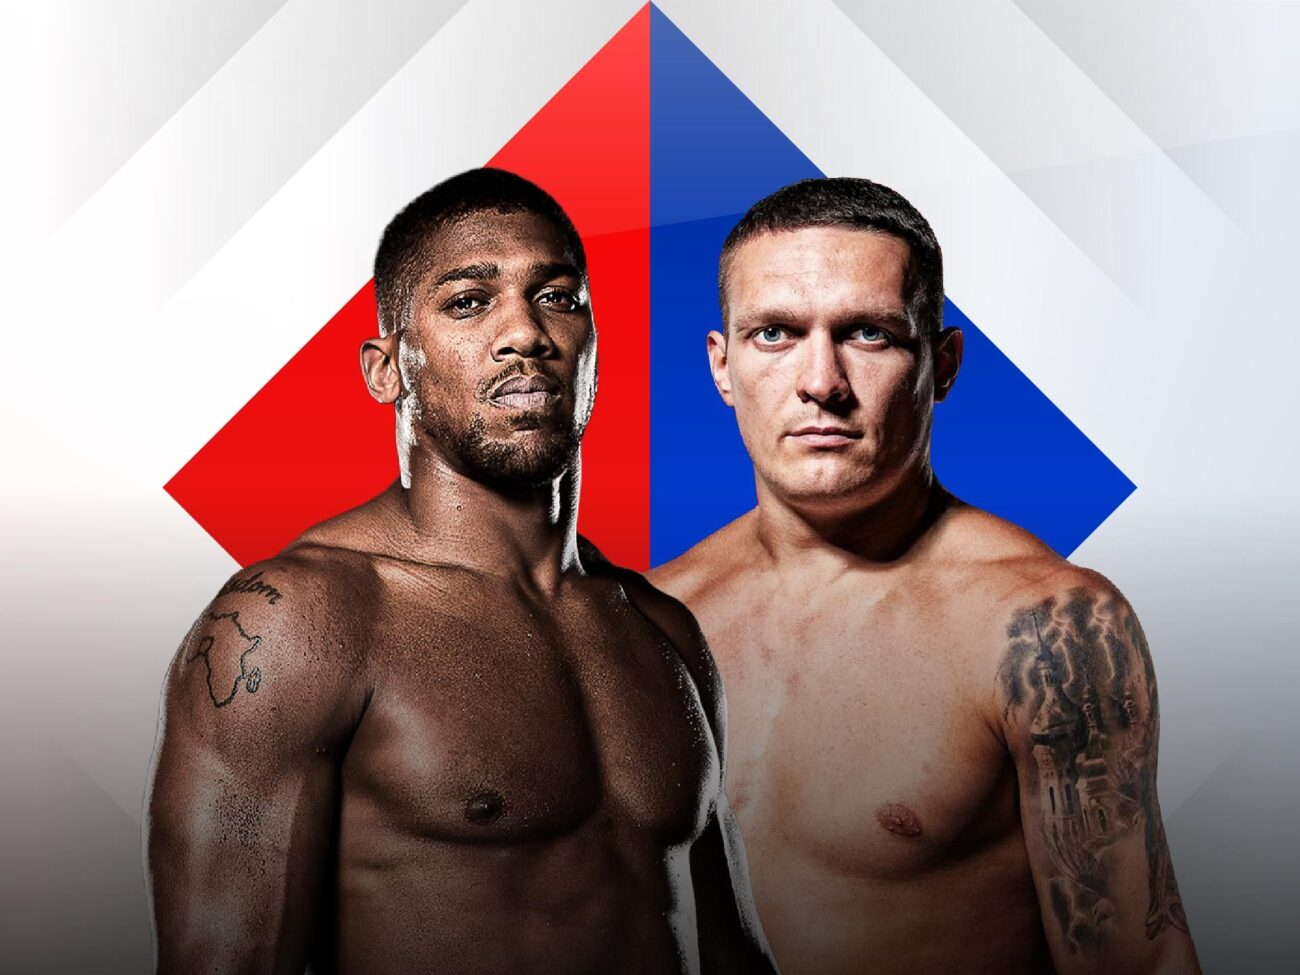 Have you been dying to see a good fight? Anthony Joshua vs Oleksandr Usyk is going to be exactly that. Learn how to stream the match live online.